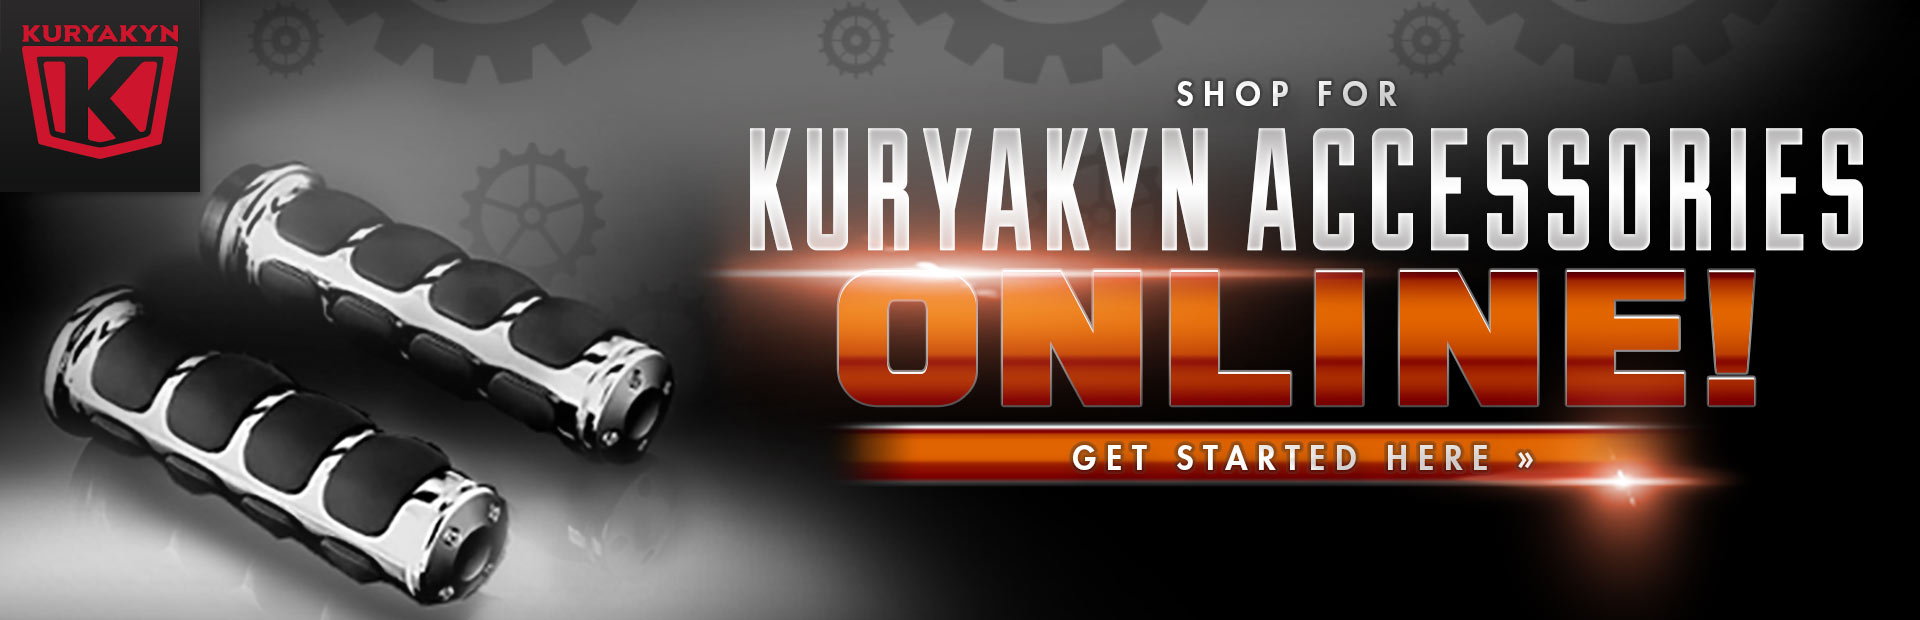 Click here to shop for Kuryakyn accessories online!